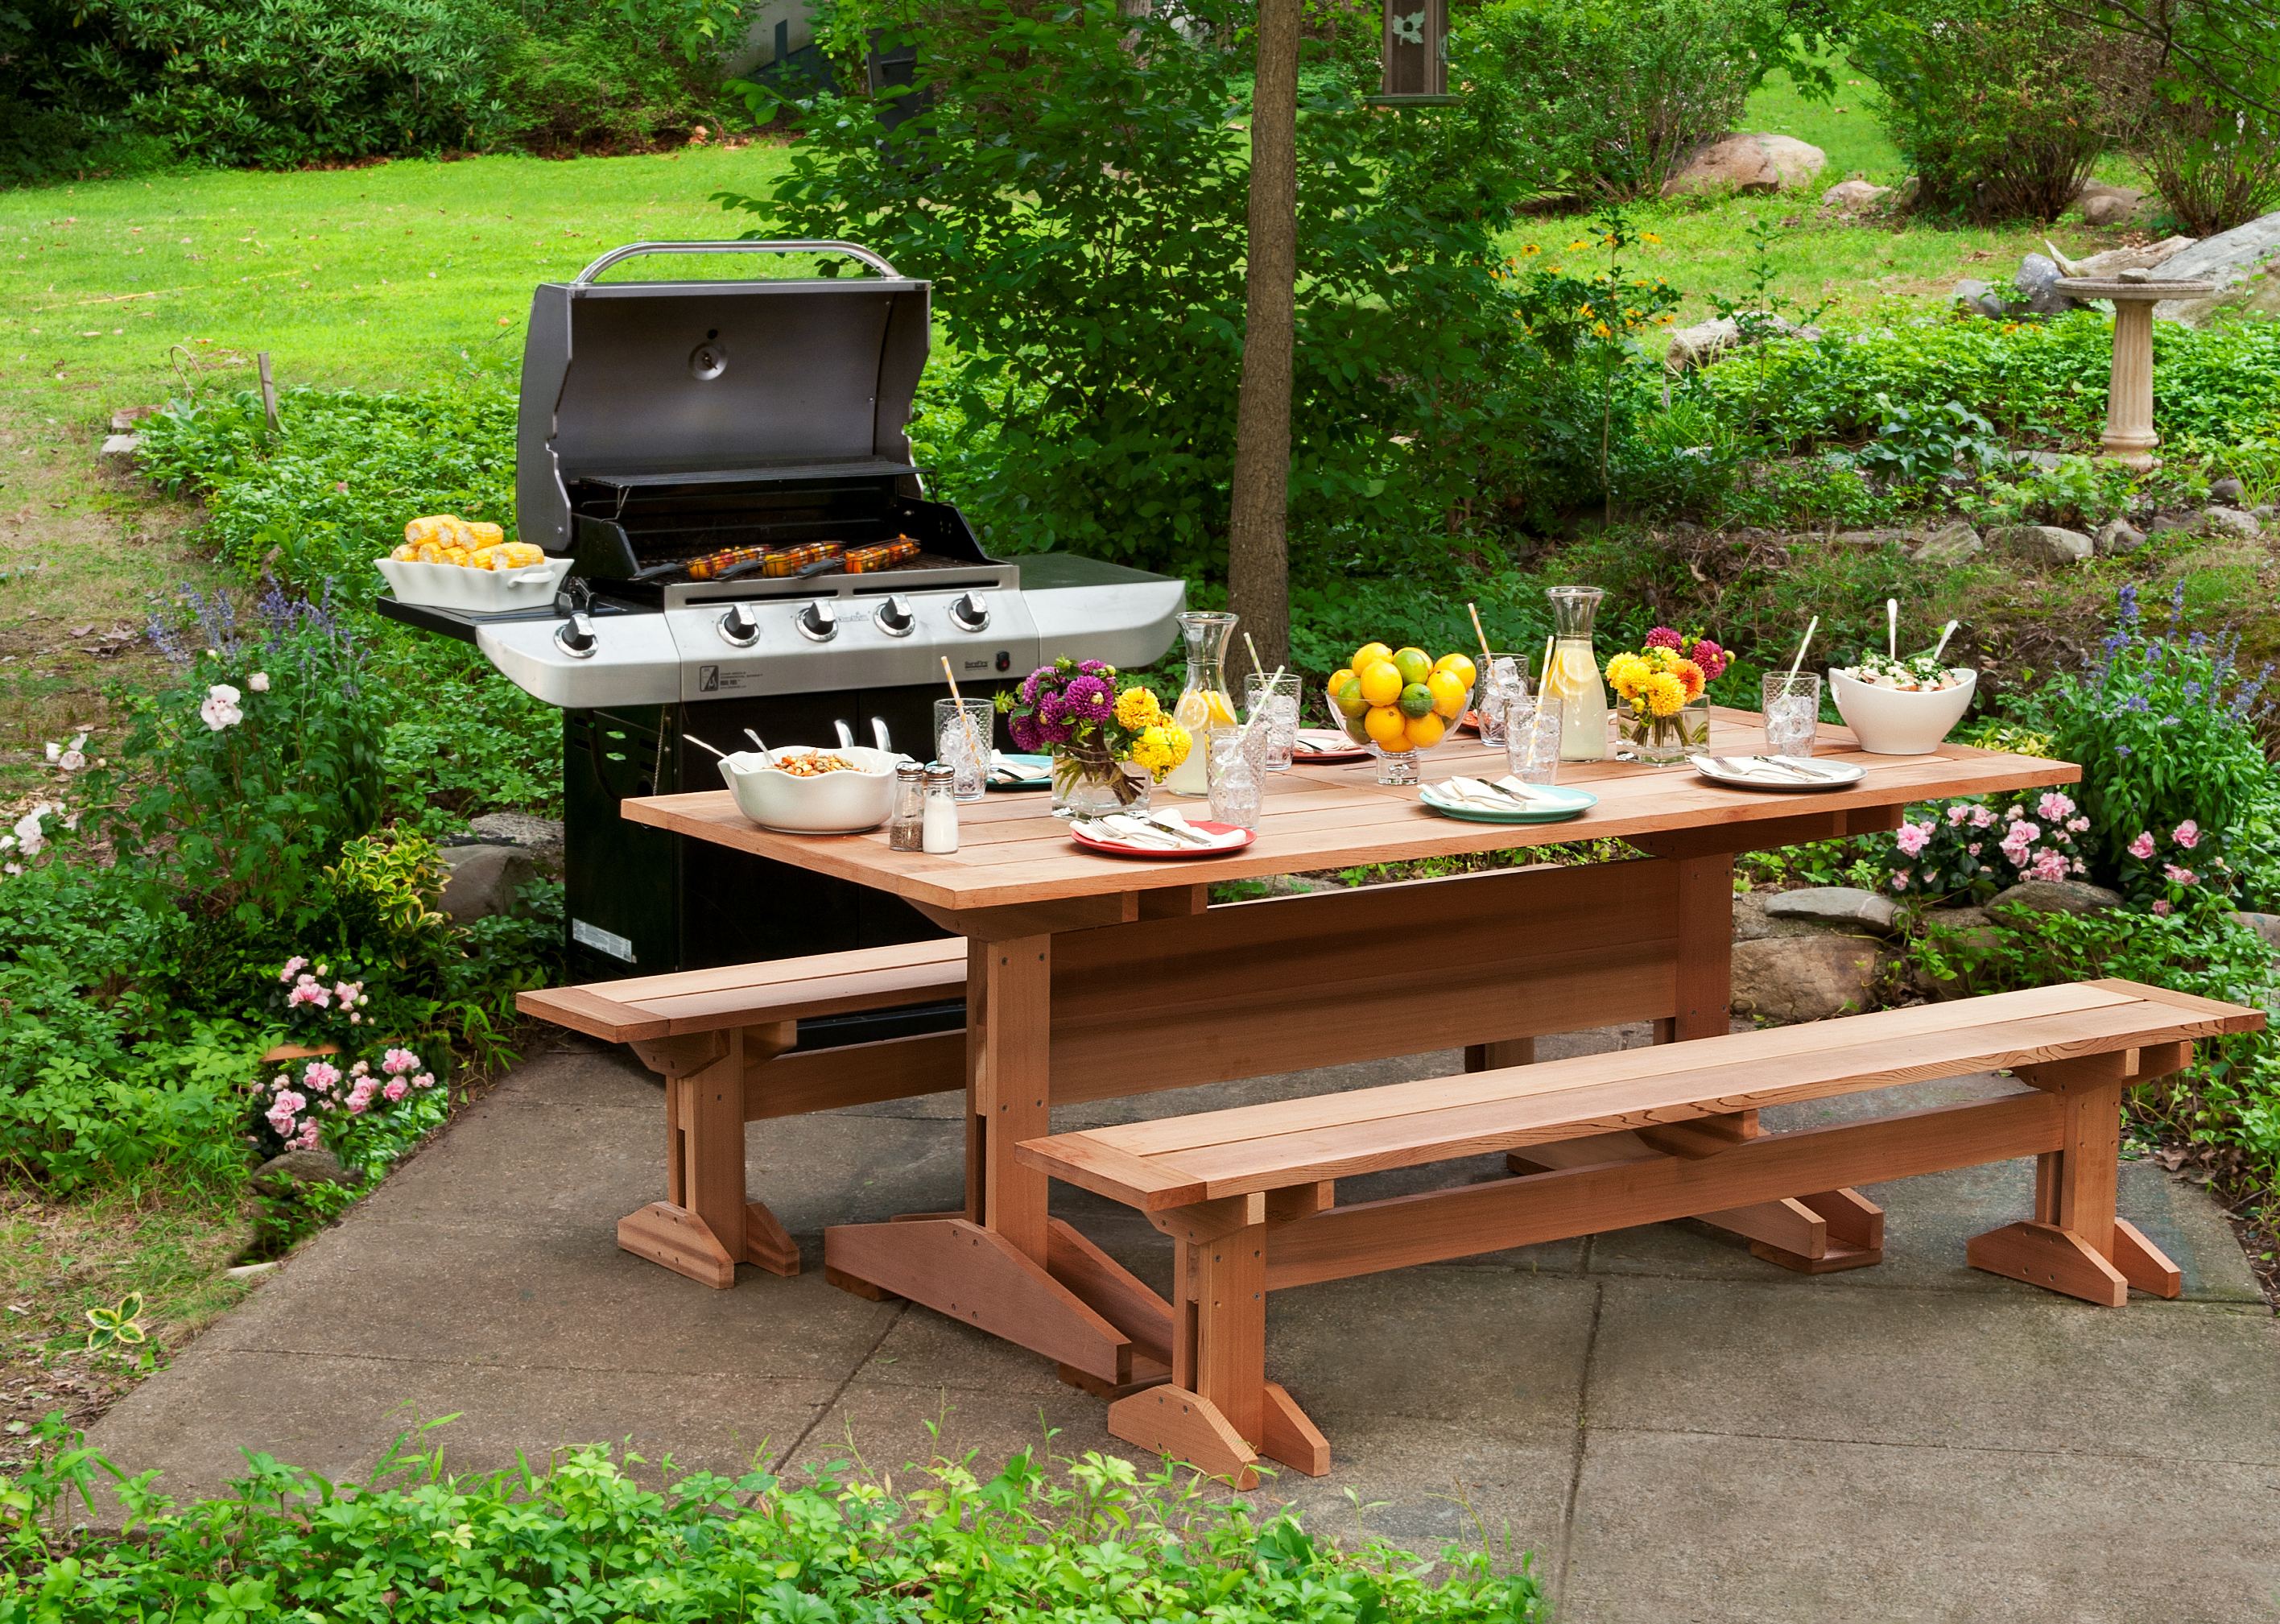 Cedar picnic table and grill.